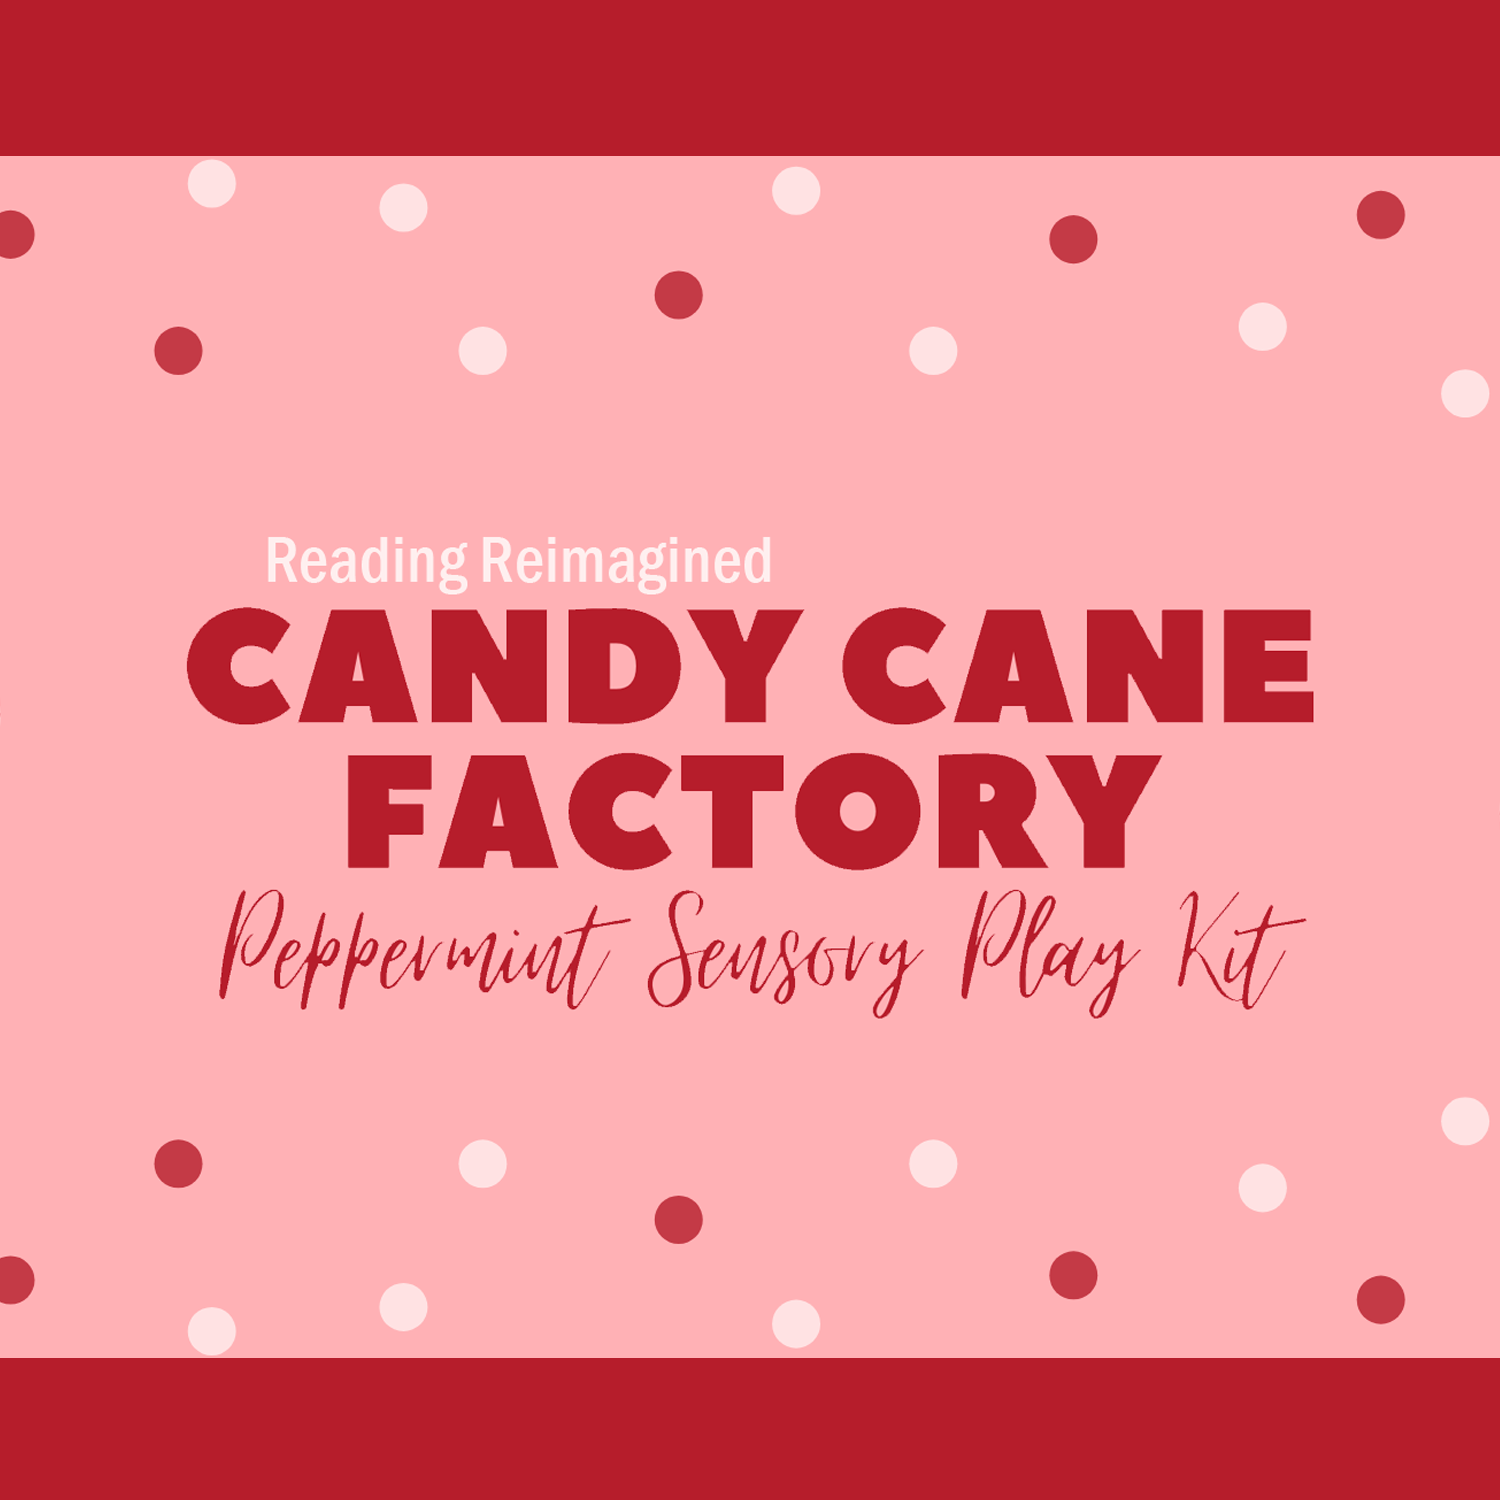 Candy Cane Factory Mini Kit